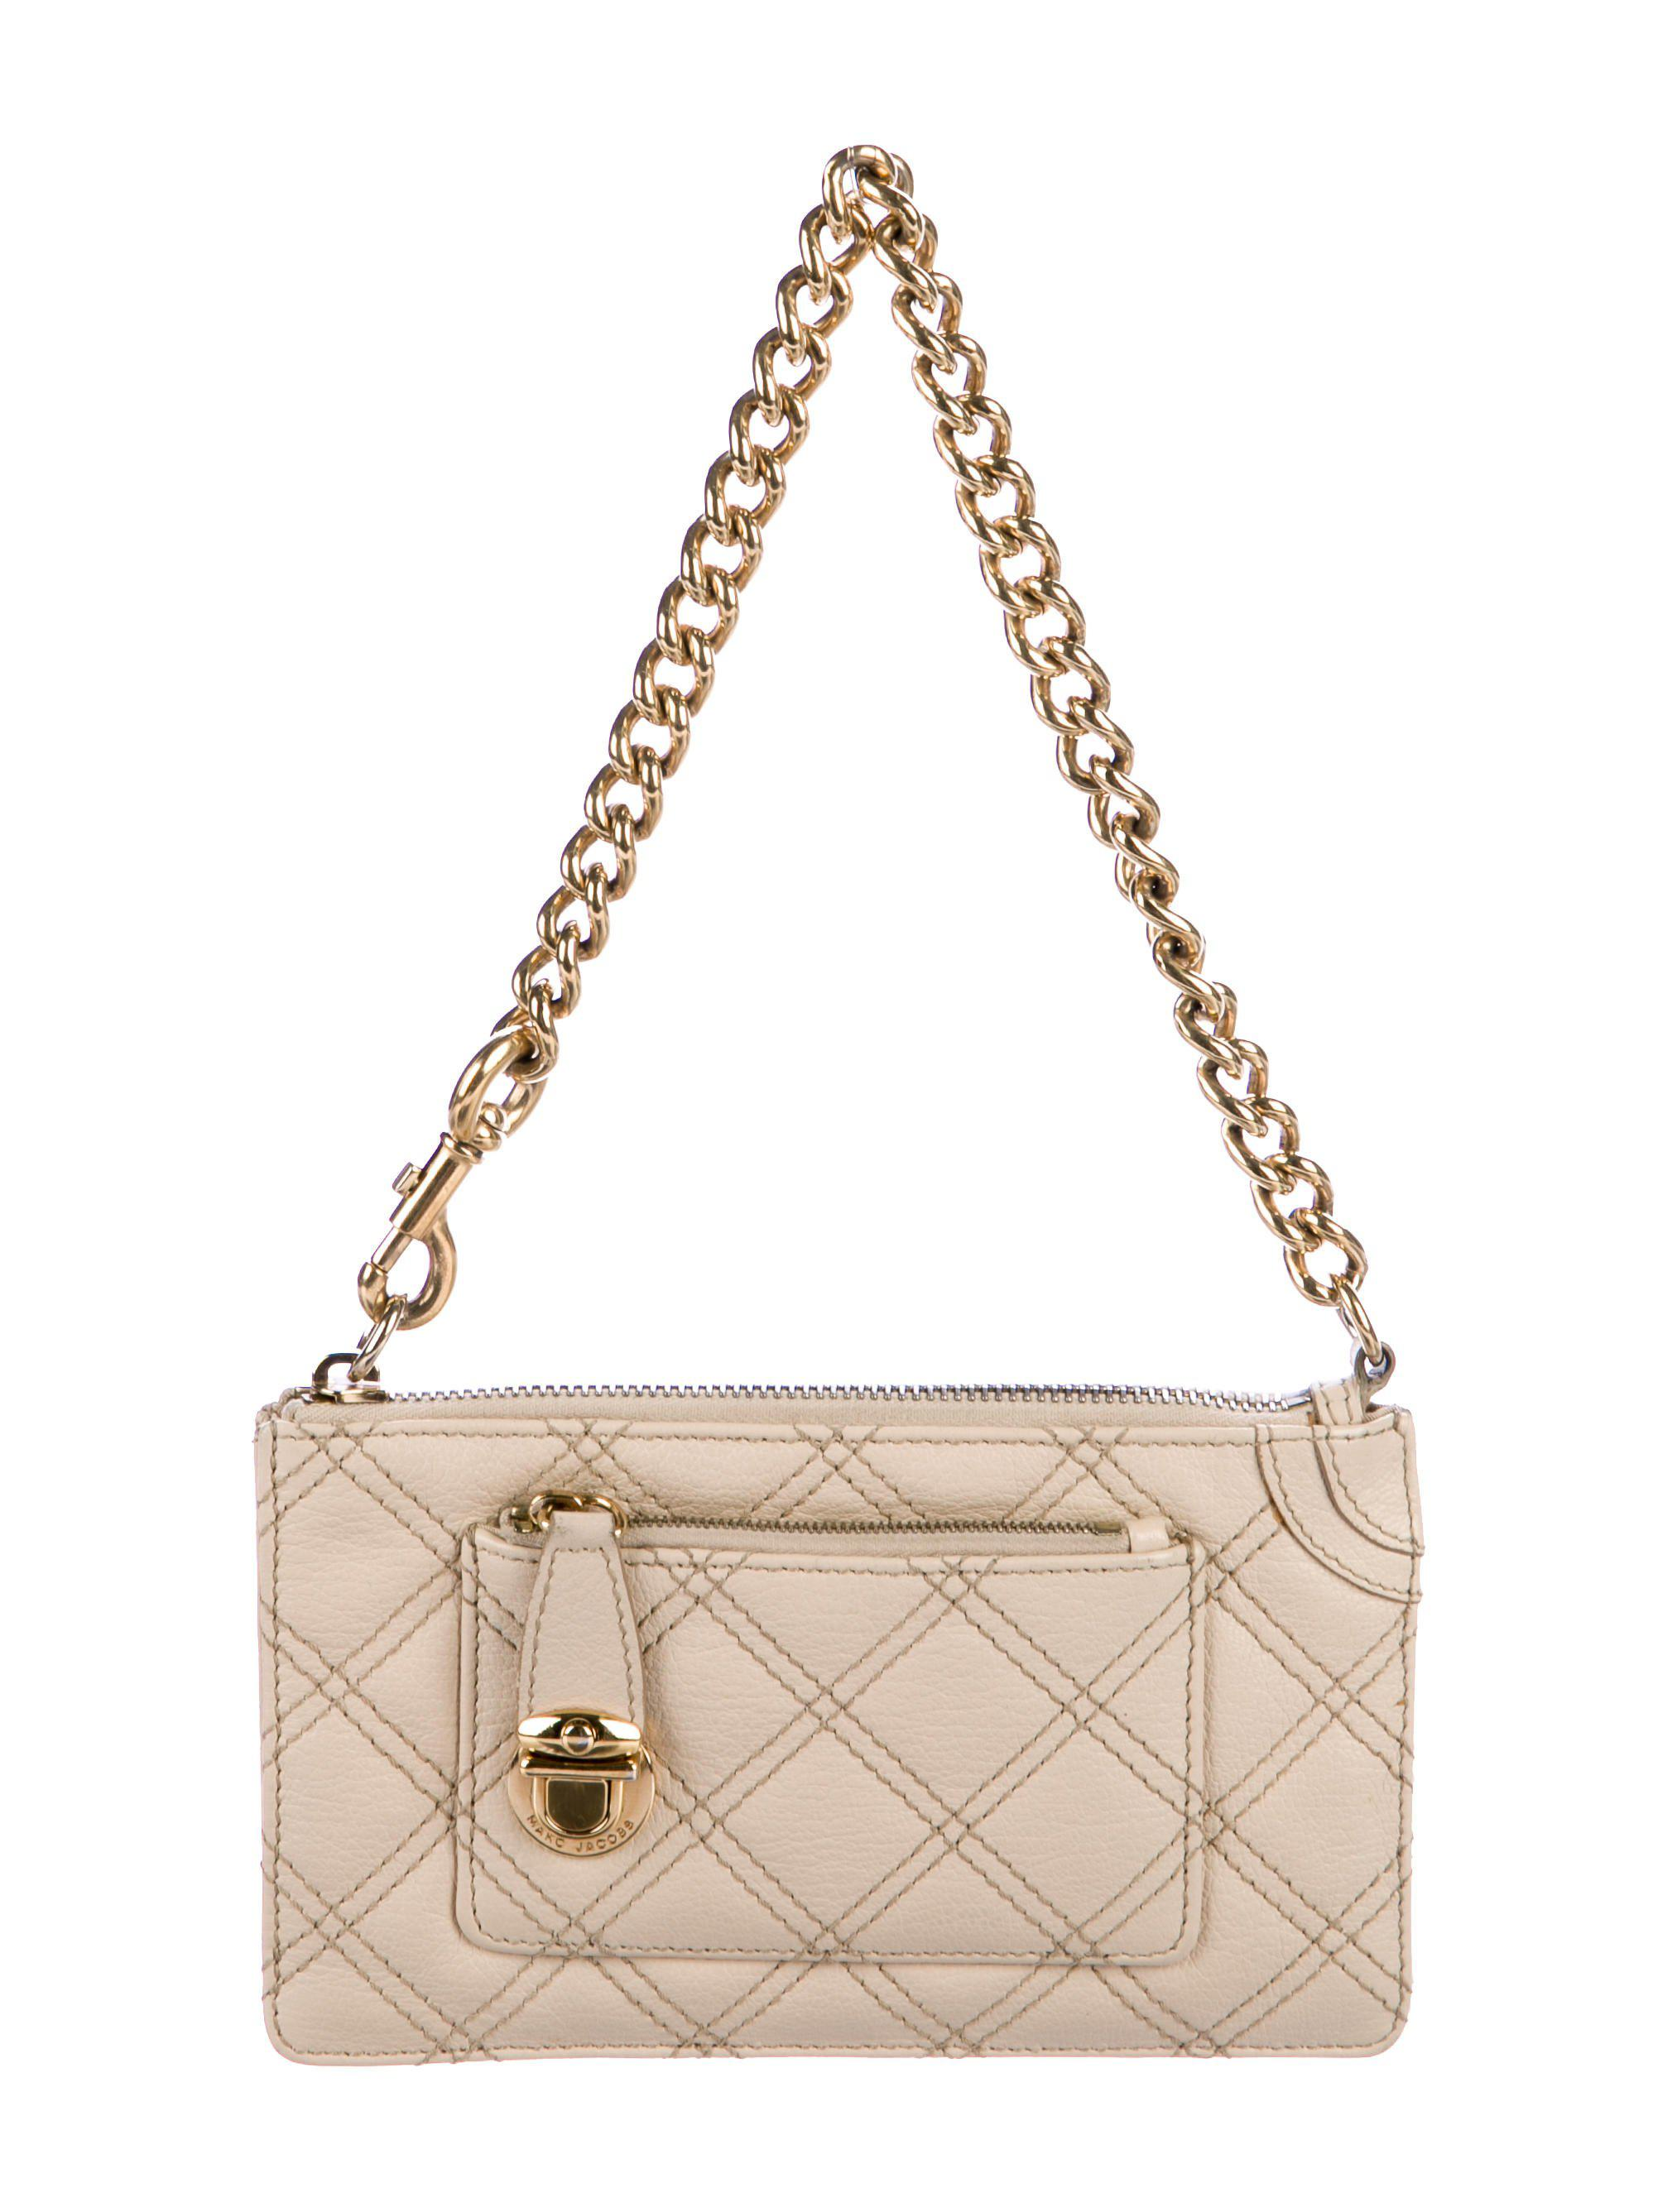 95bd51555d Lyst - Marc Jacobs Quilted Leather Clutch Beige in Metallic - Save 31%